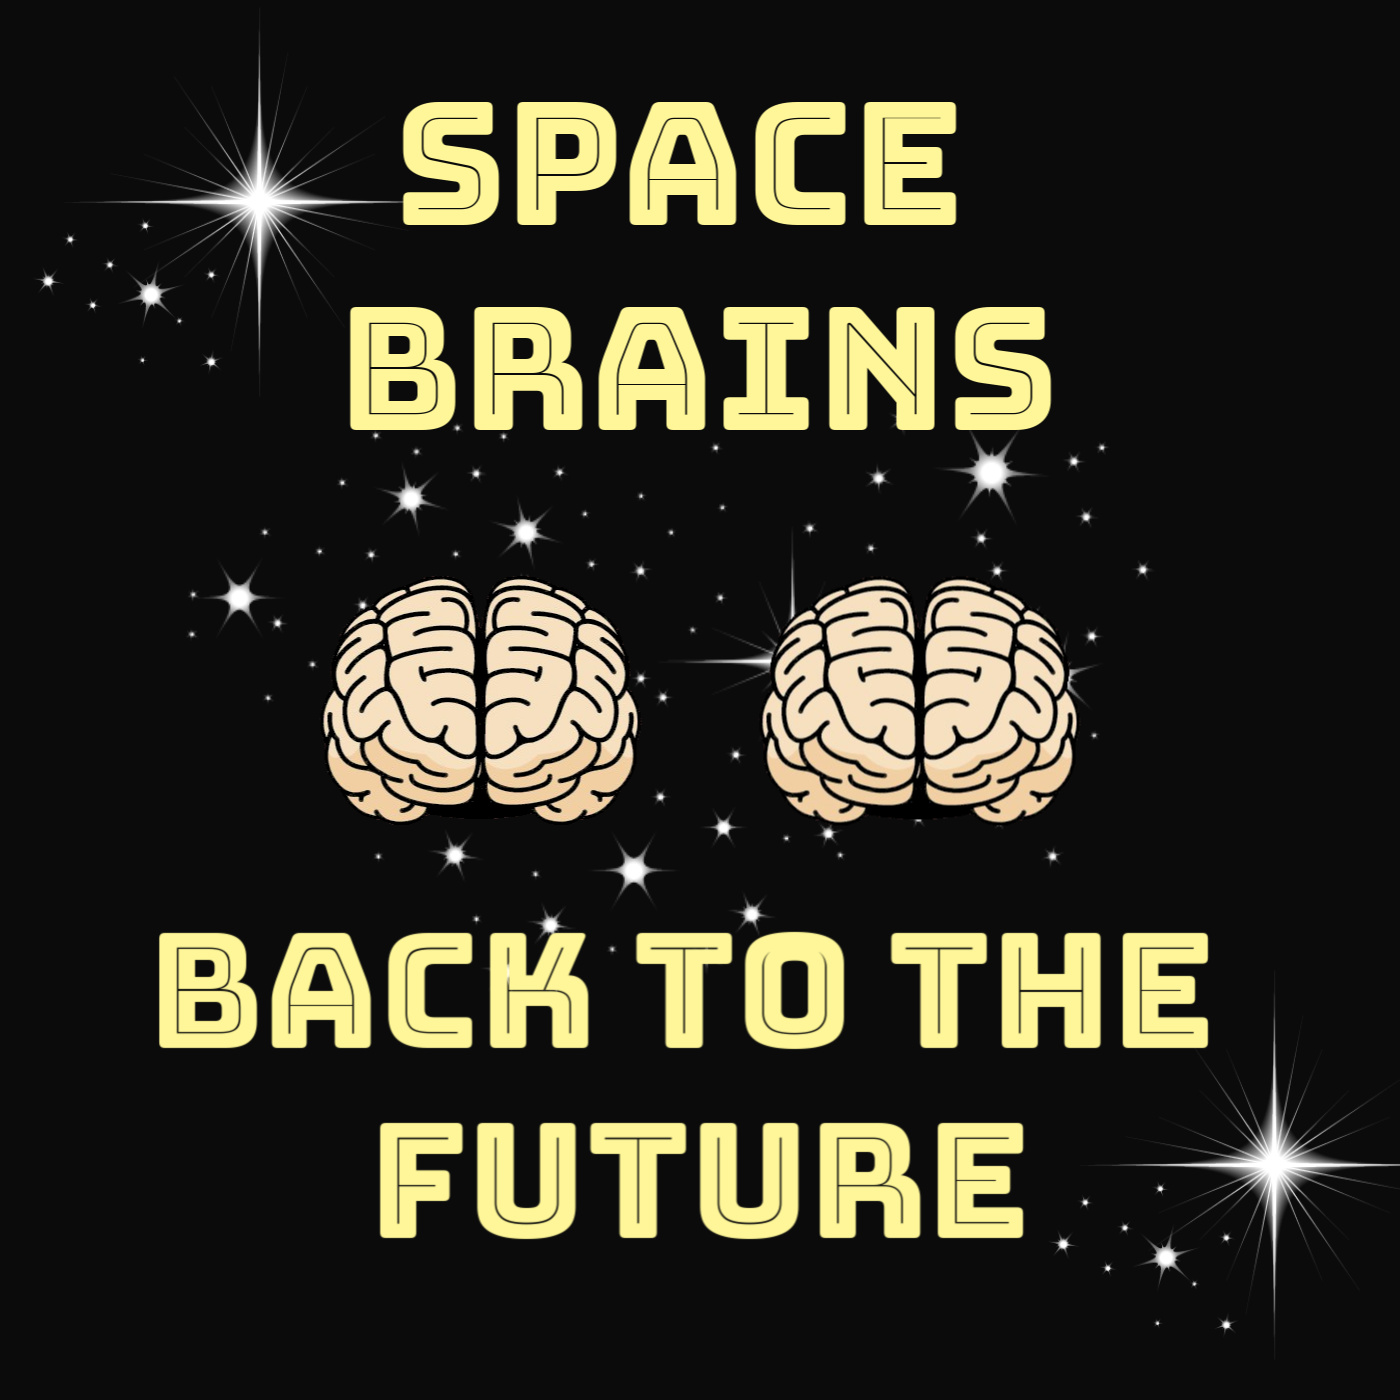 space brains - 20 - back to the future